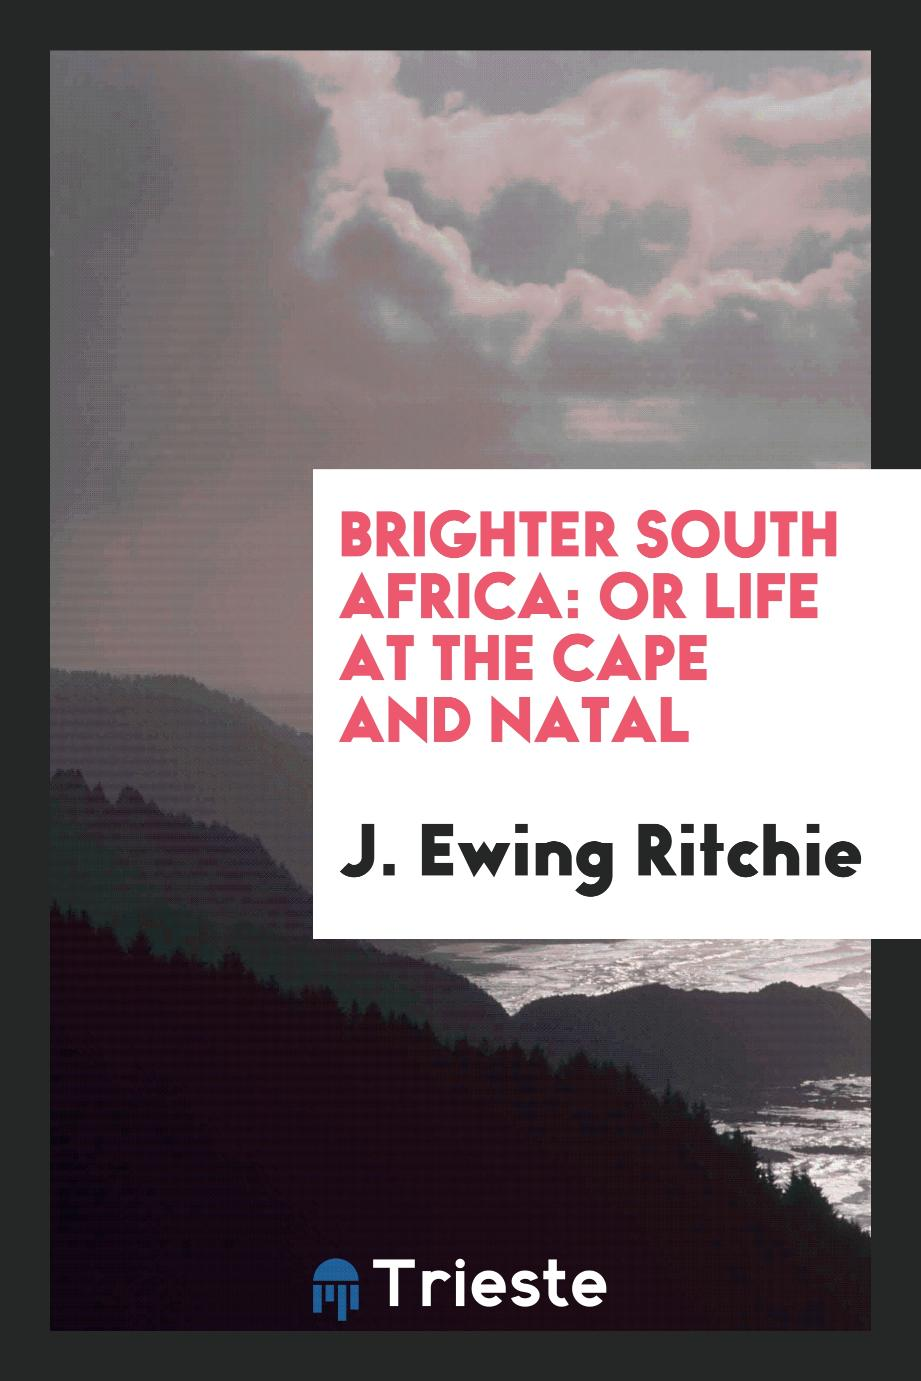 Brighter South Africa: Or Life at the Cape and Natal